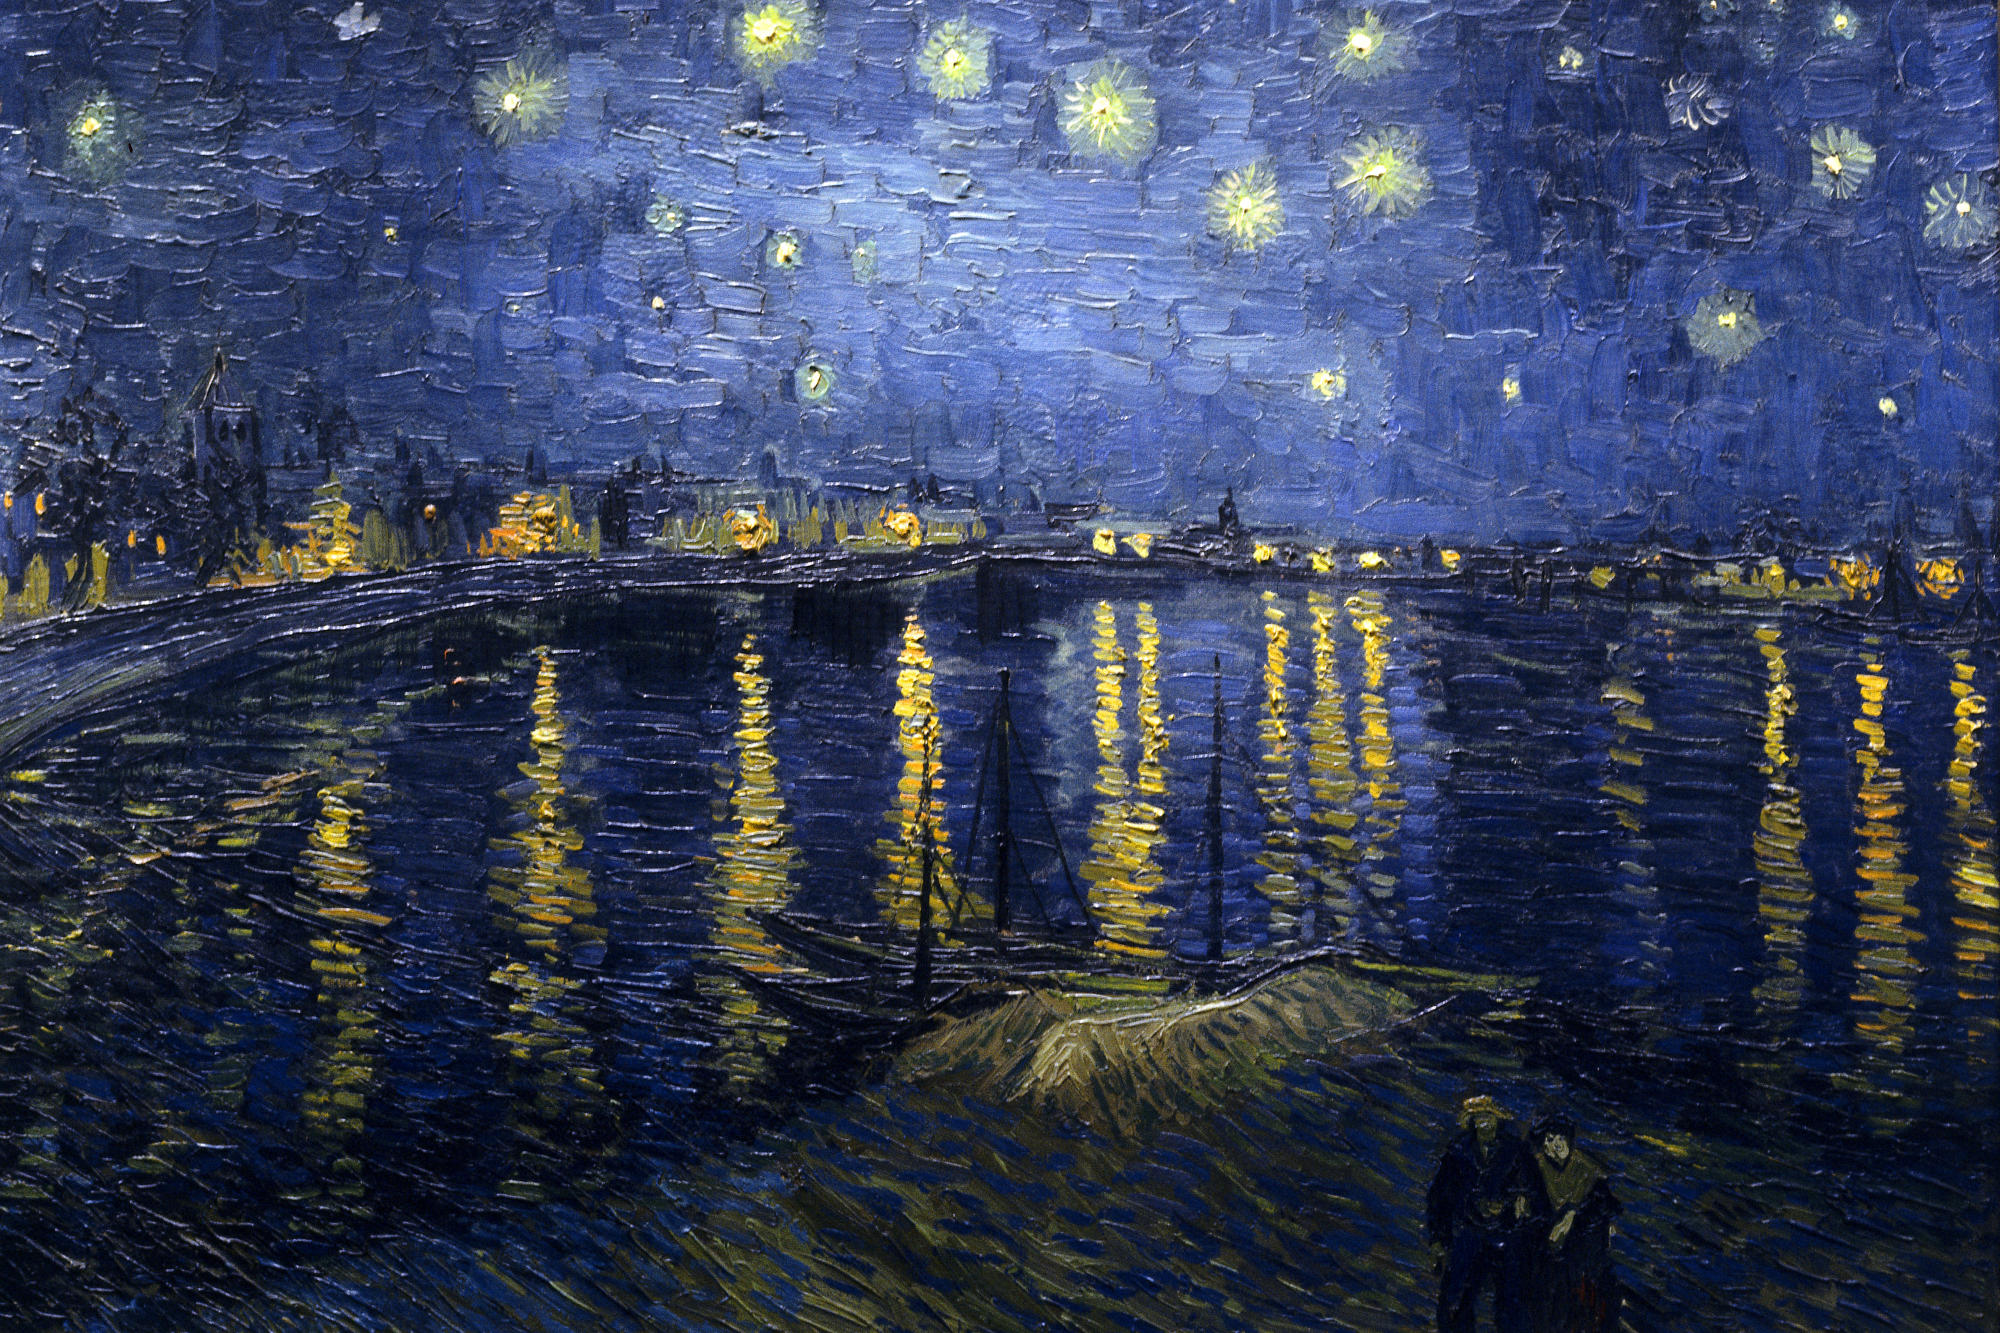 van gogh dark paintings - photo #4